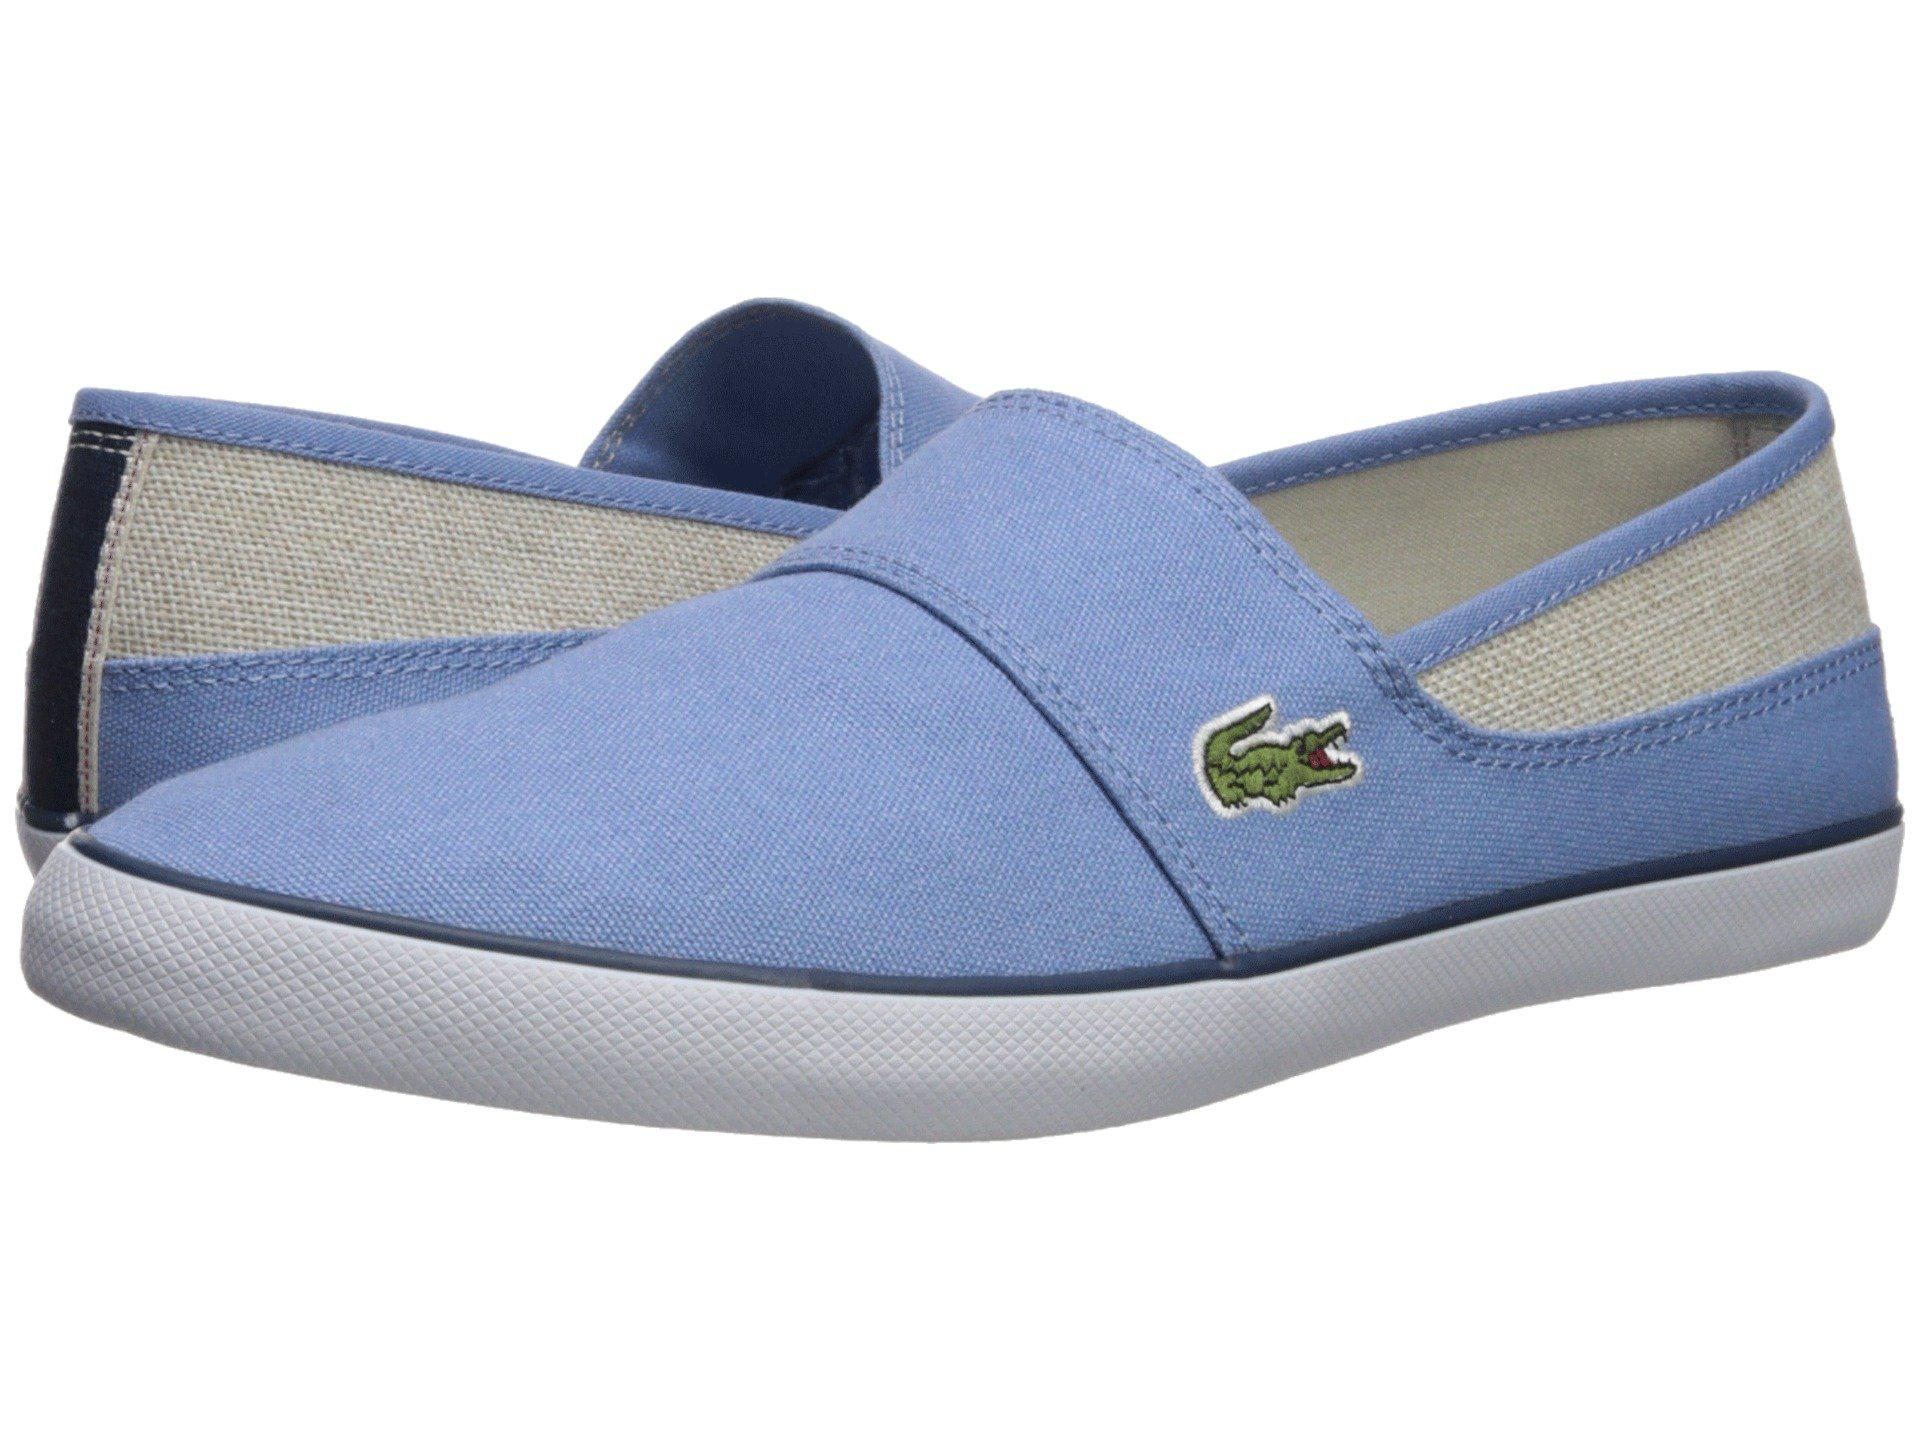 0a2abd927210 Lyst - Lacoste Marice 218 1 (natural natural) Men s Shoes in Blue ...